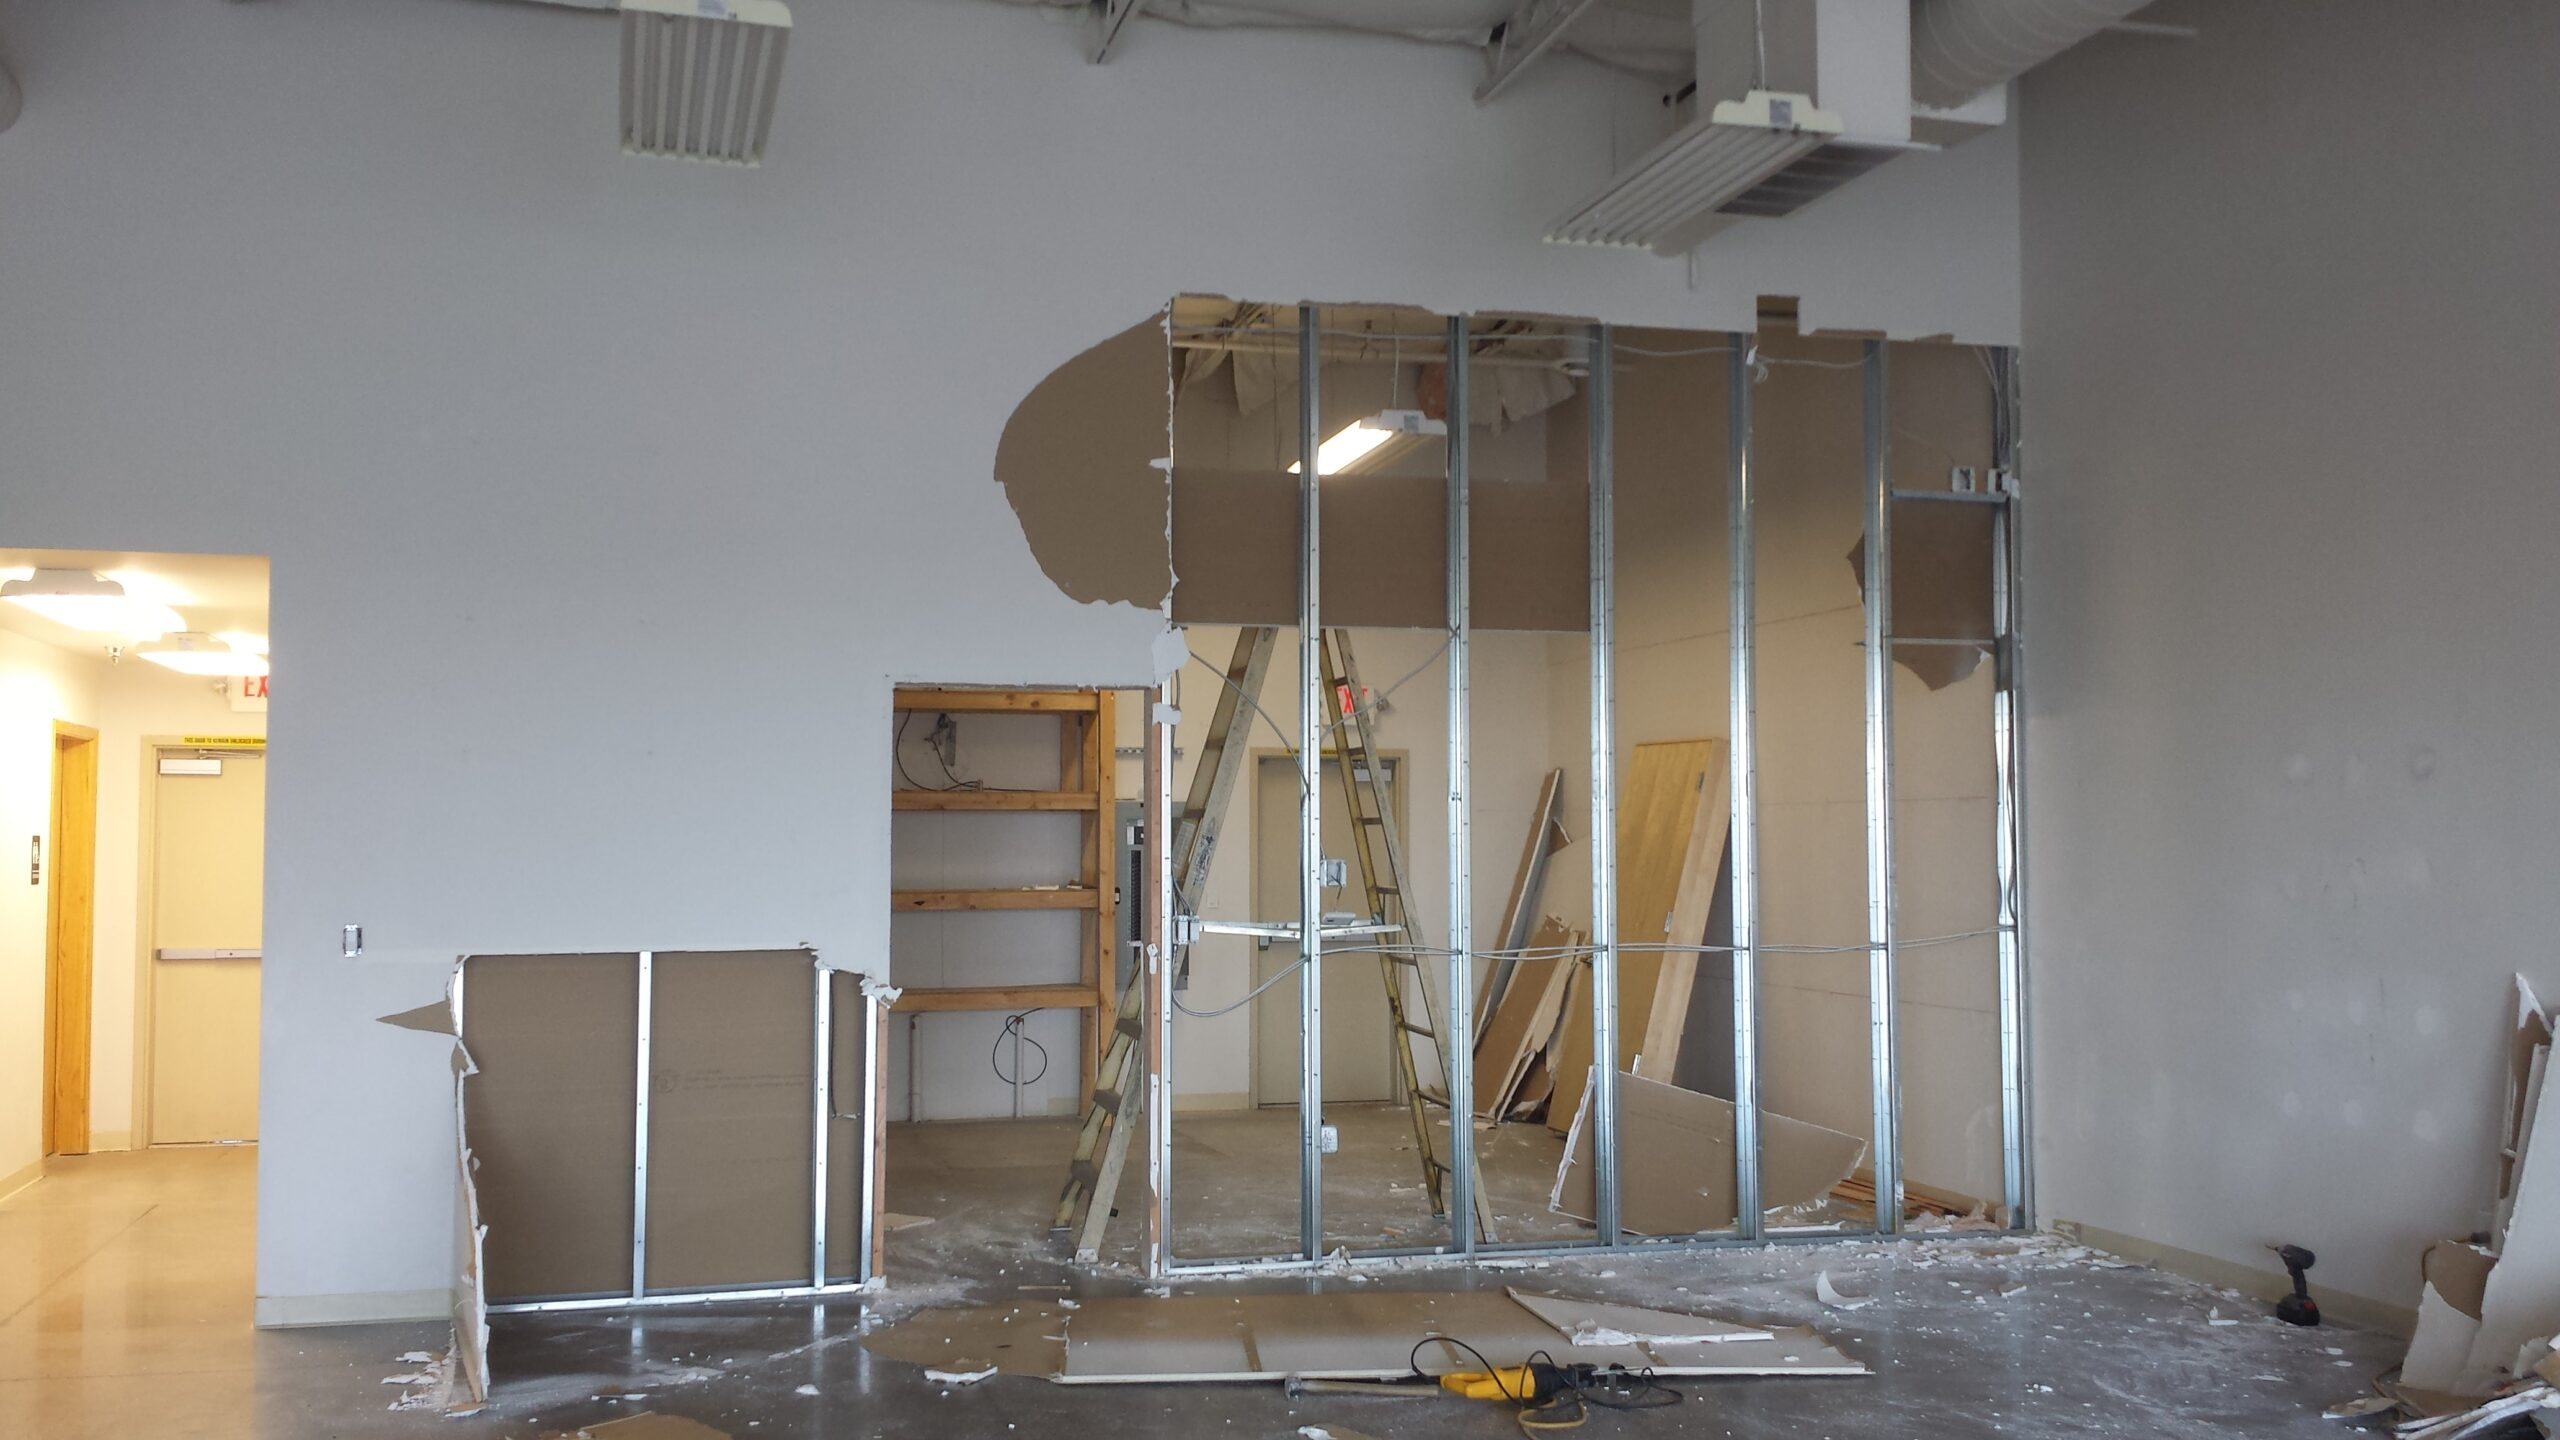 image showing remodel construction site